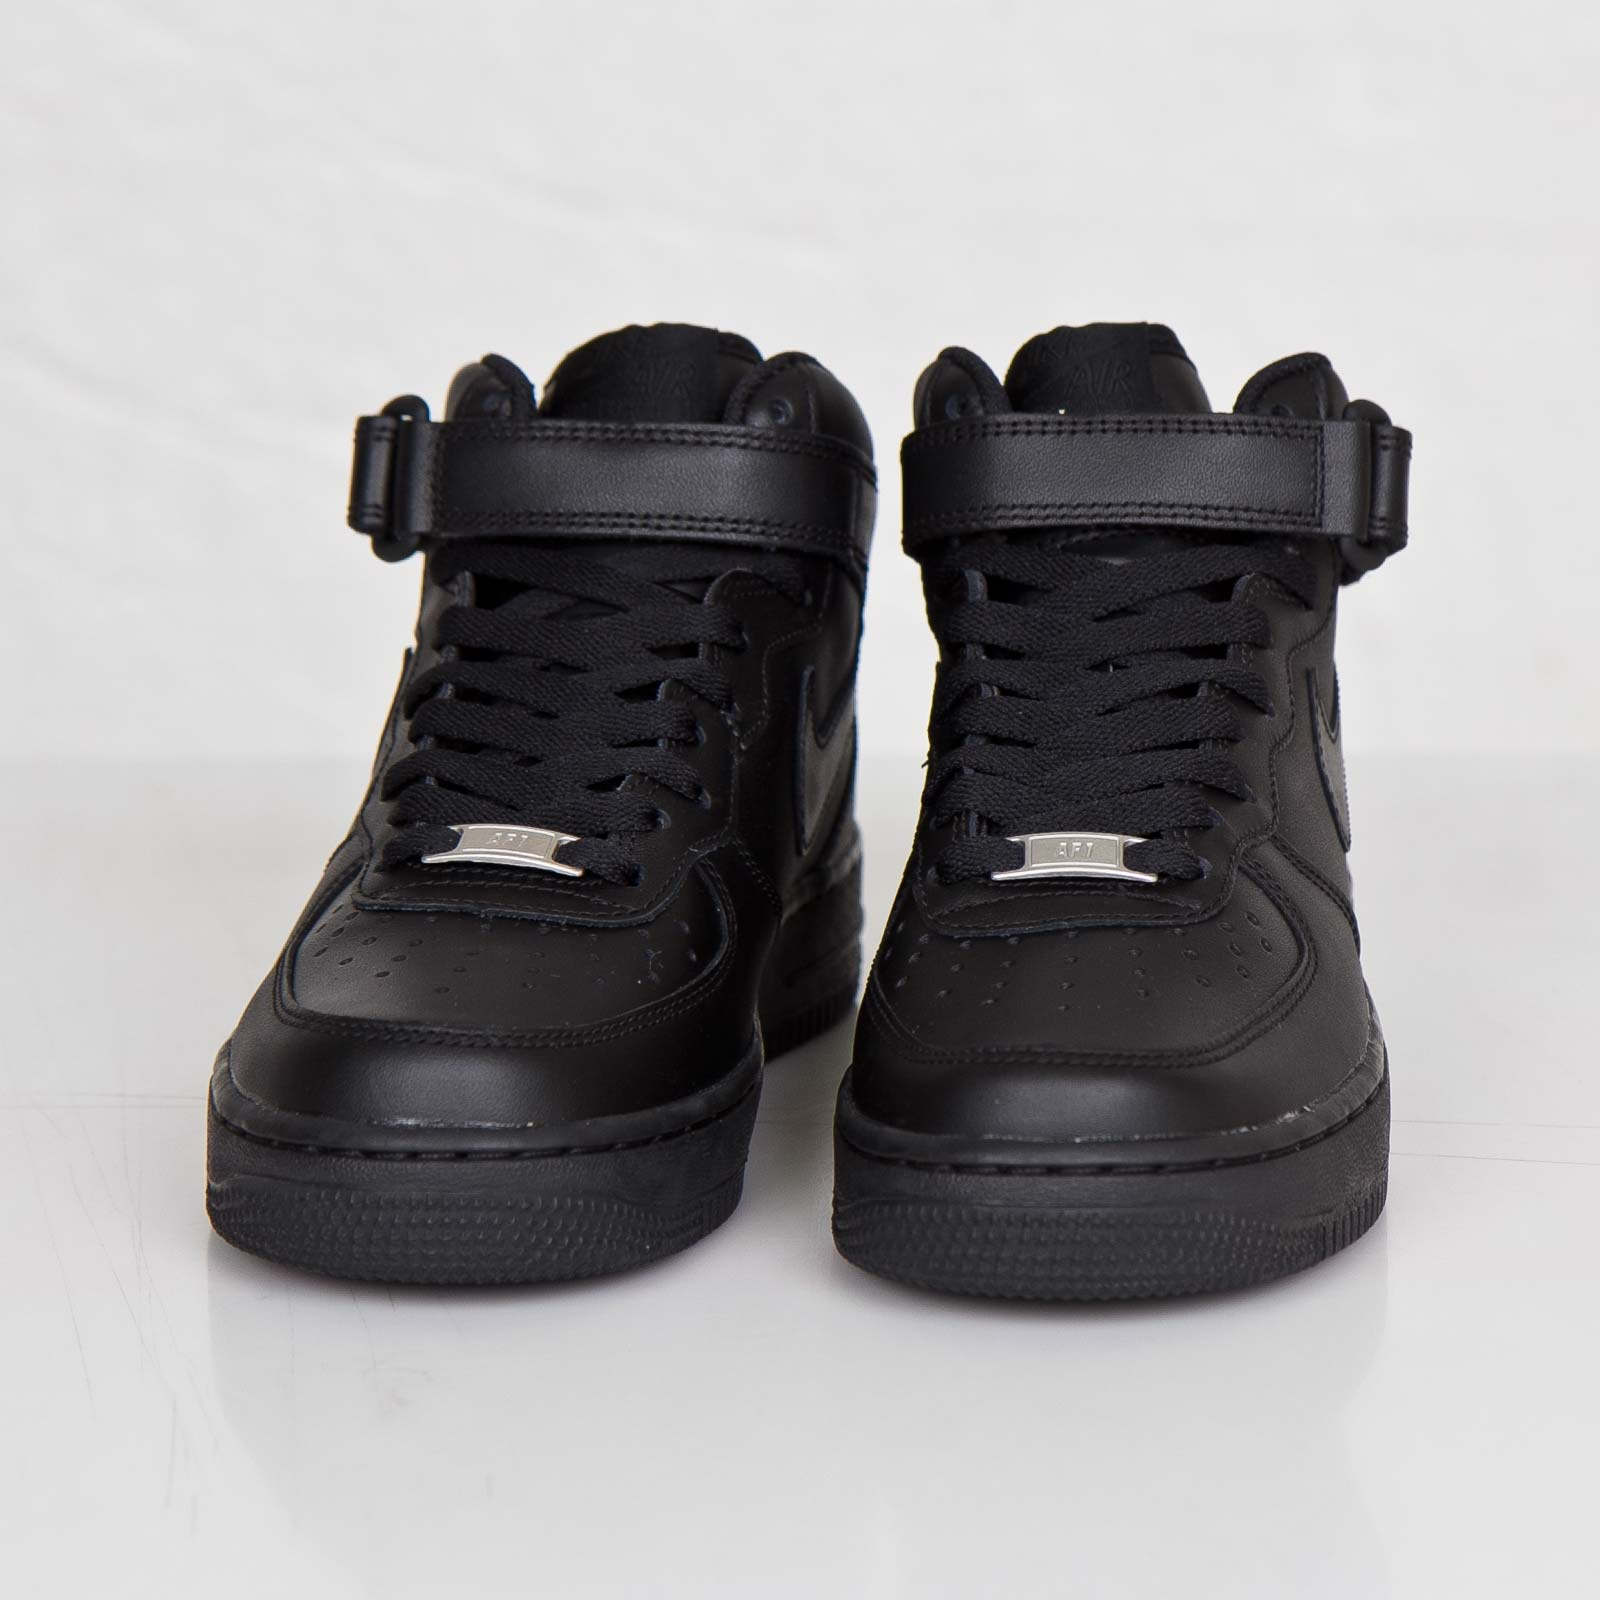 sports shoes 560fa 10575 Nike Wmns Air Force 1 Mid 07 LE - 366731-001 - Sneakersnstuff   sneakers    streetwear online since 1999